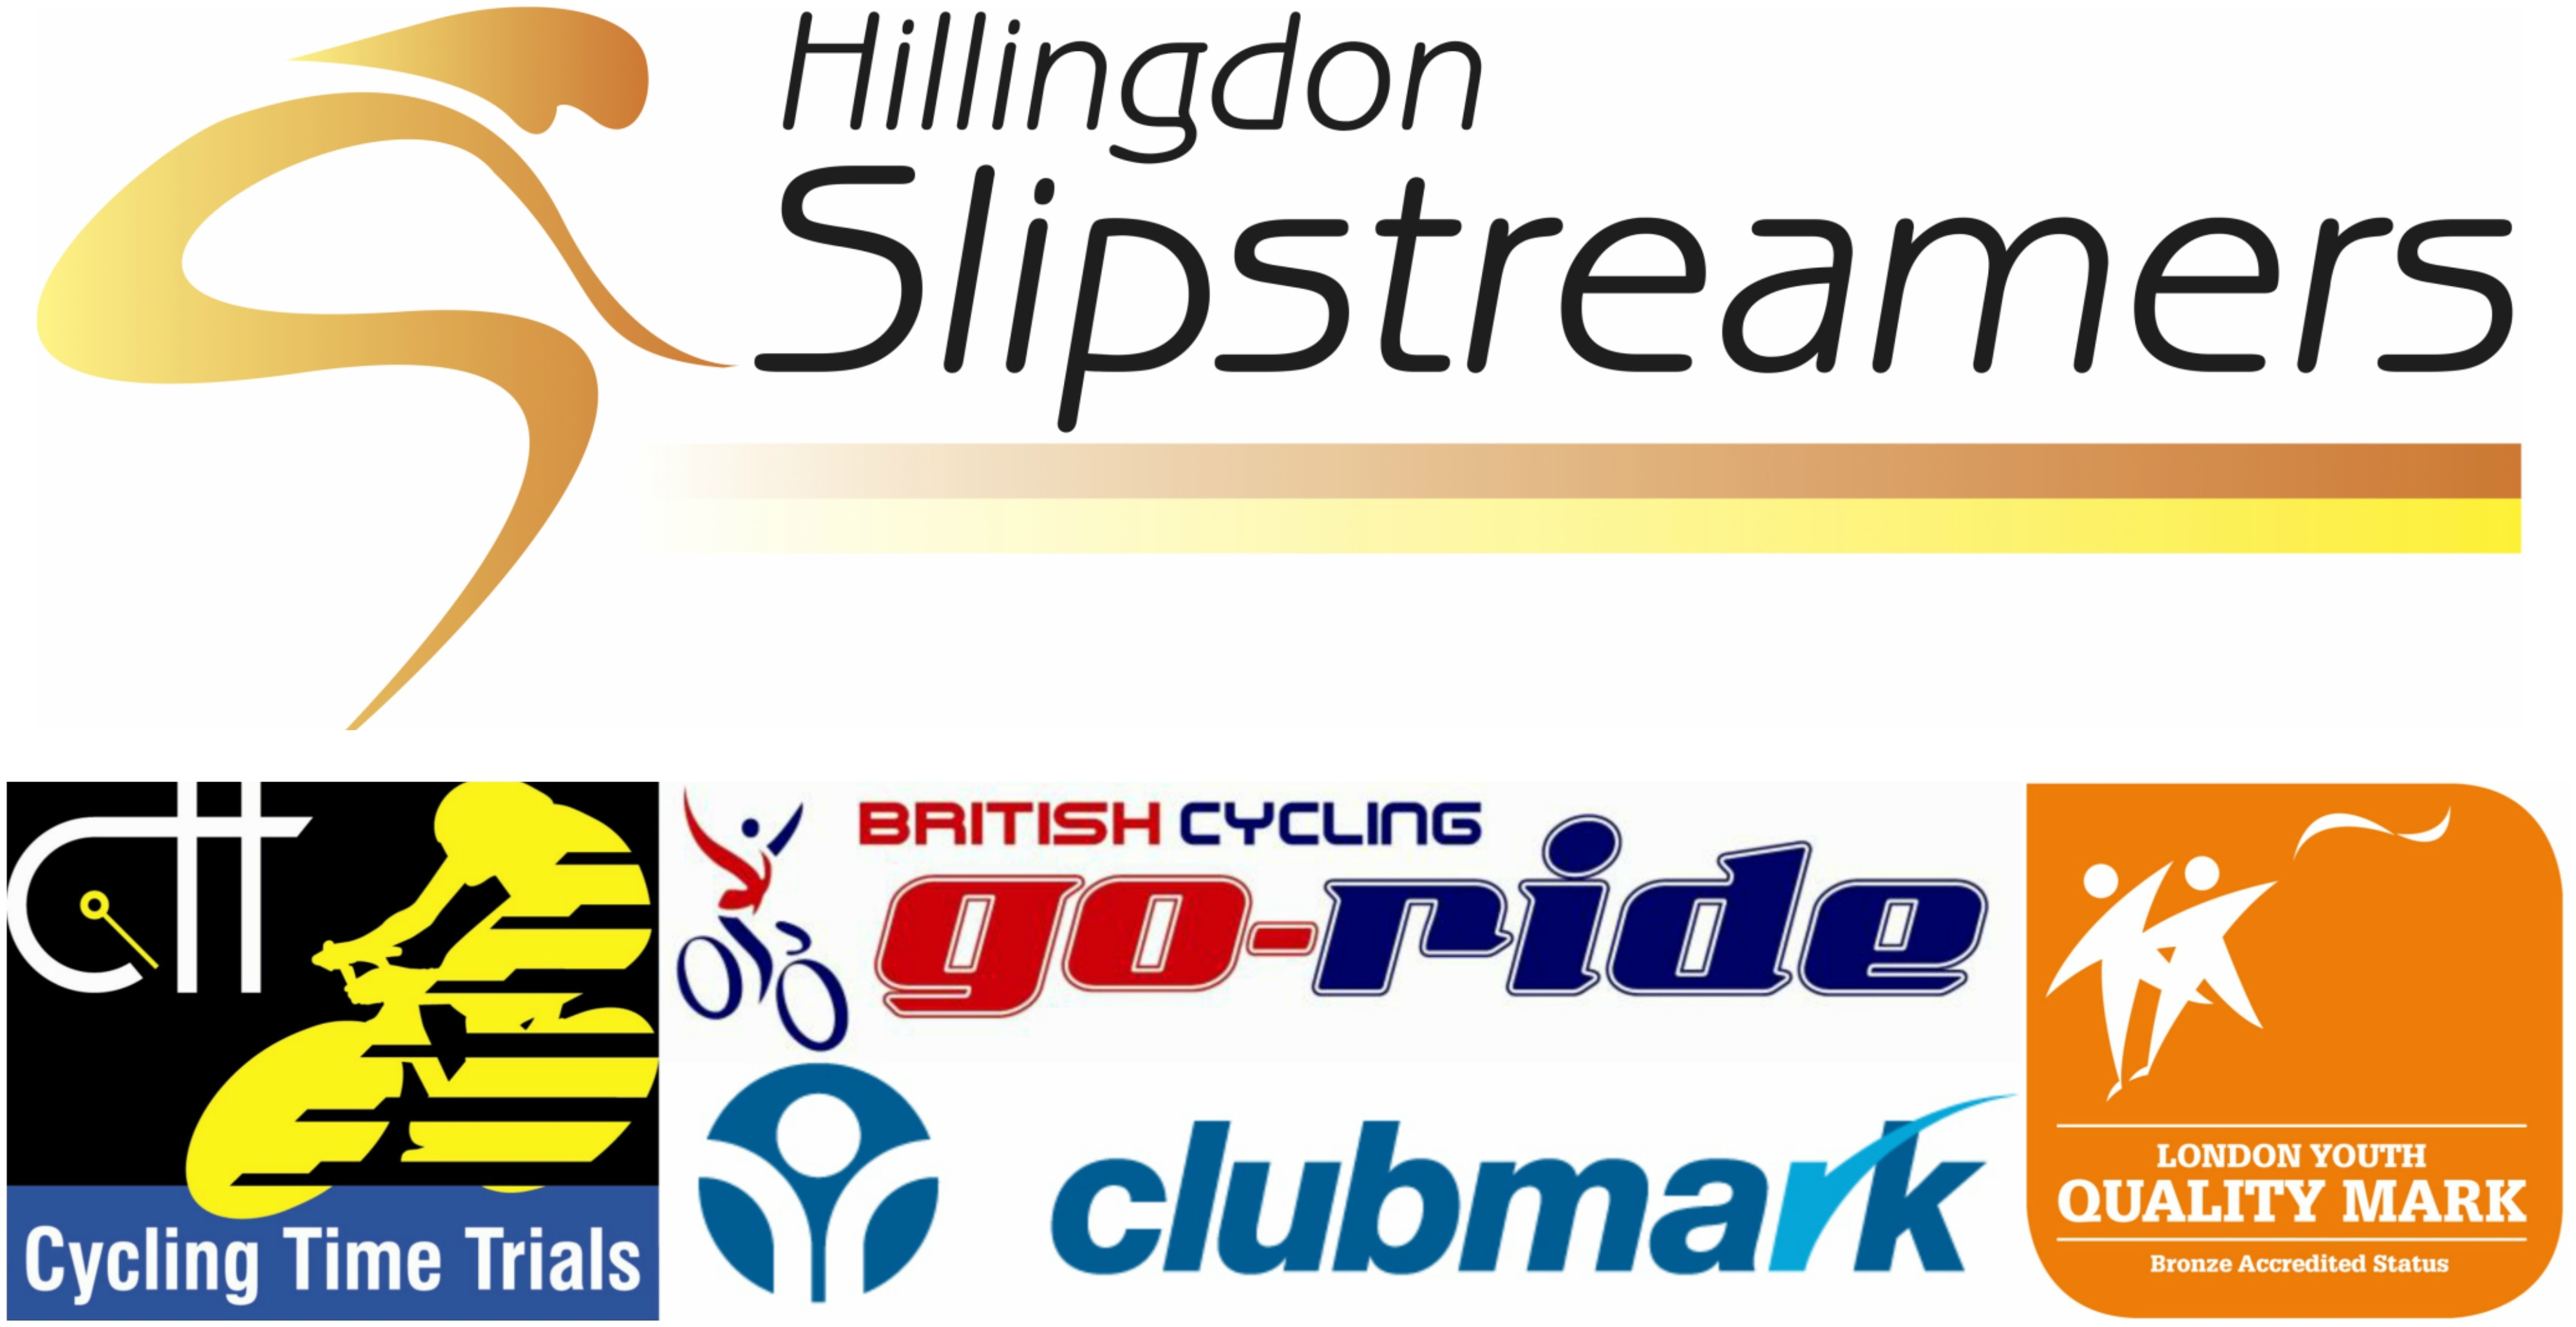 Slipstreamers New Rider Induction - 24 October 2018